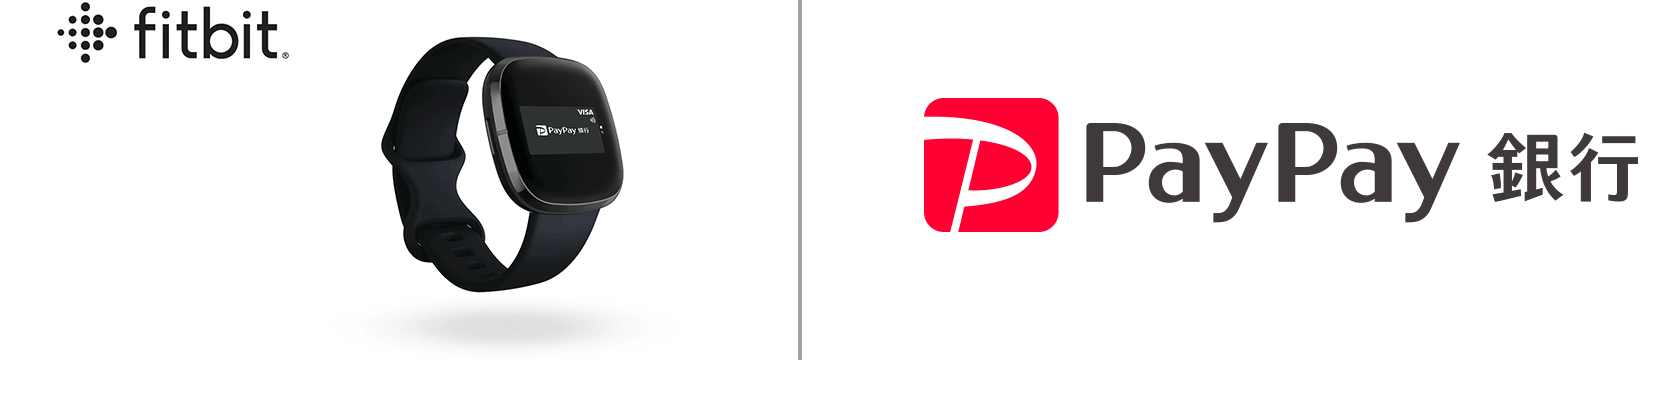 Fitbit PayとPayPay銀行